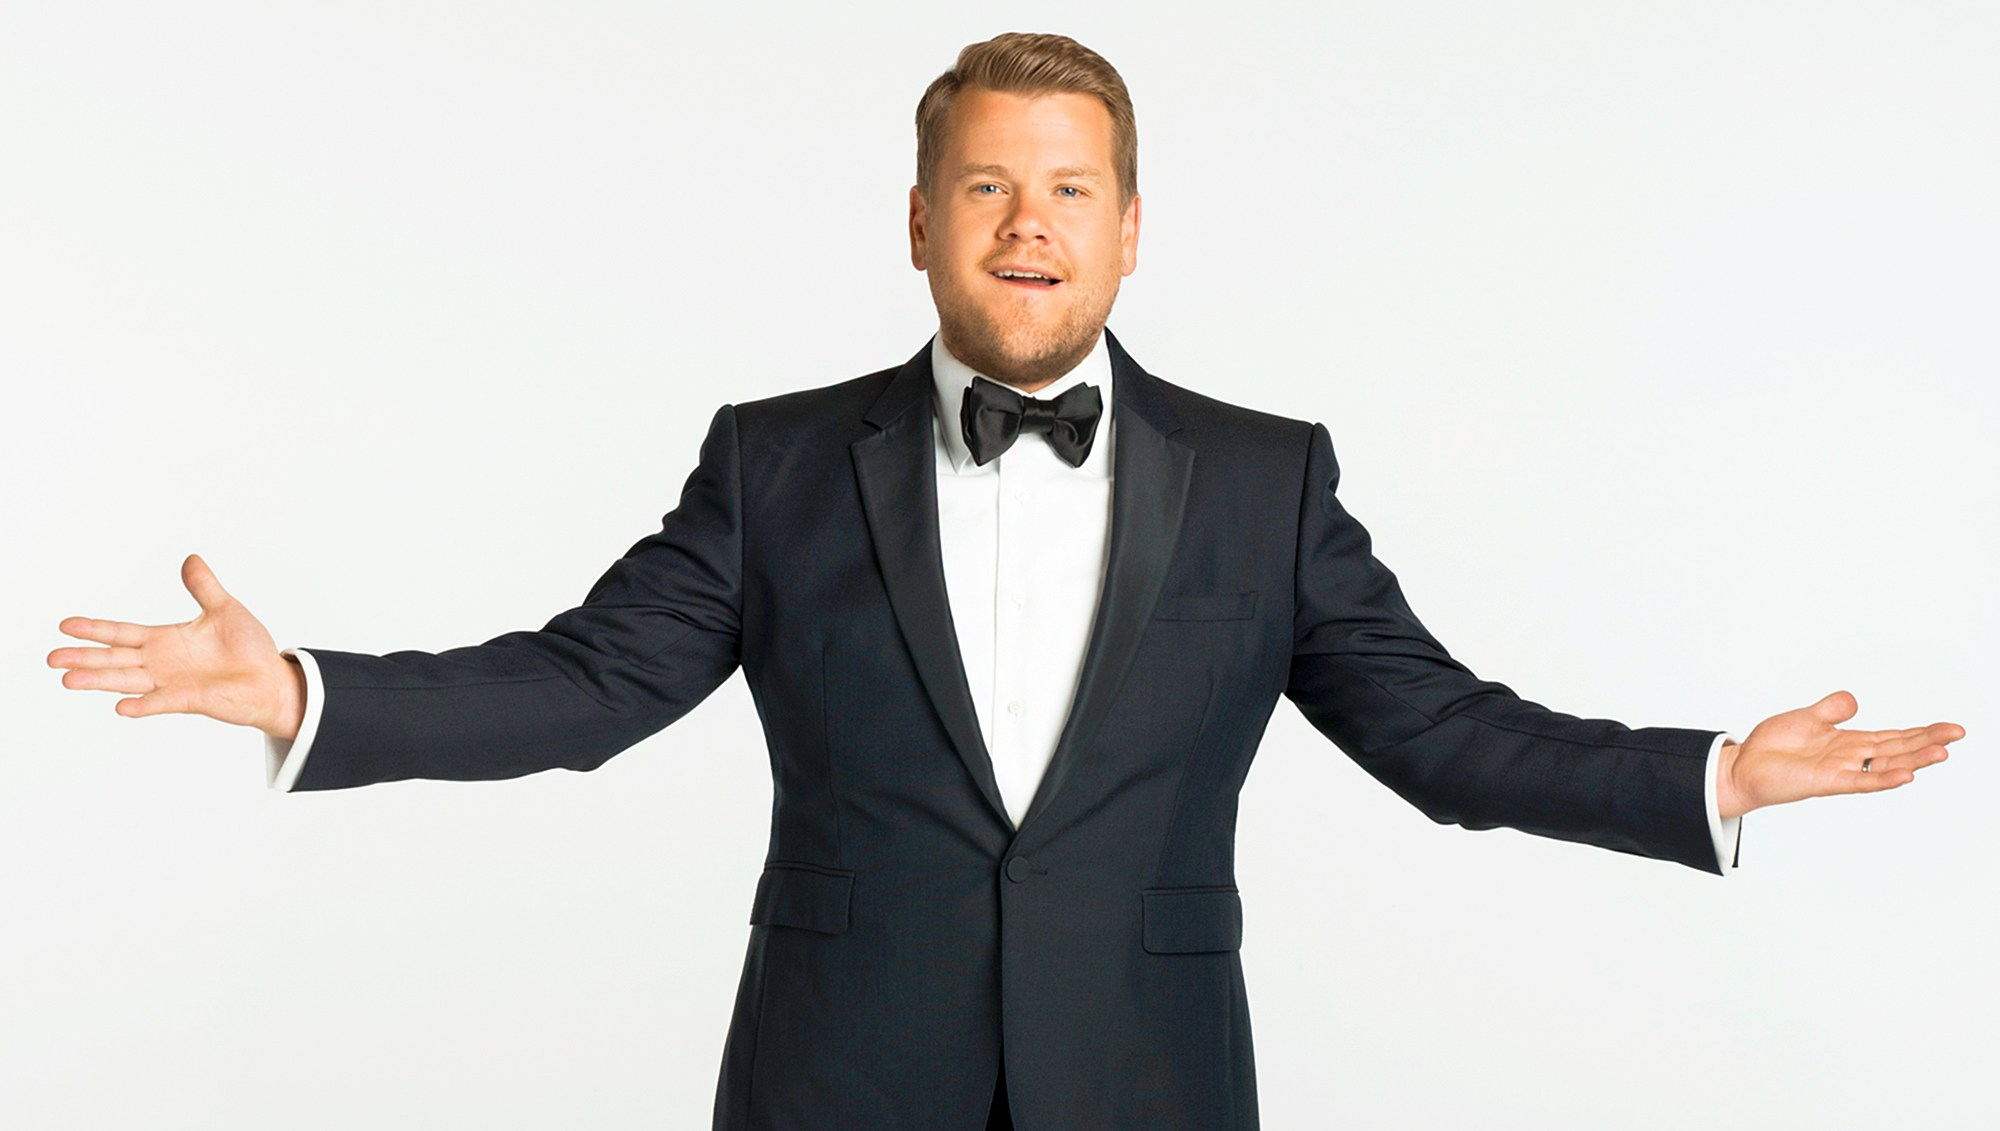 James Corden will host the 60th Annual Grammy AwardsA on January 28, 2018.